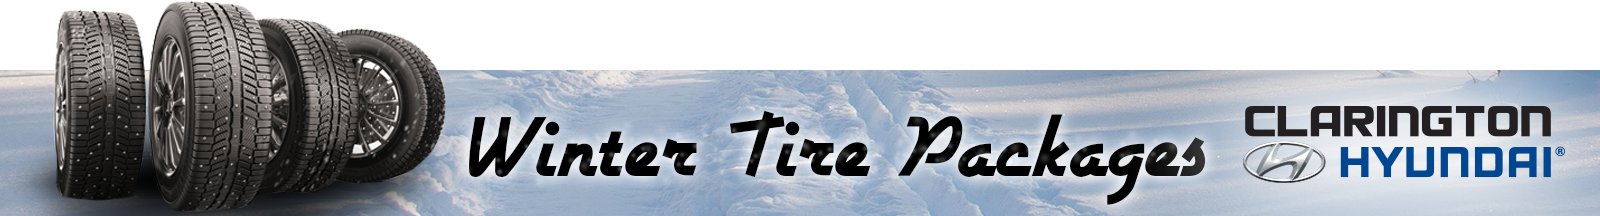 Hyundai_Winter_Tire_Header